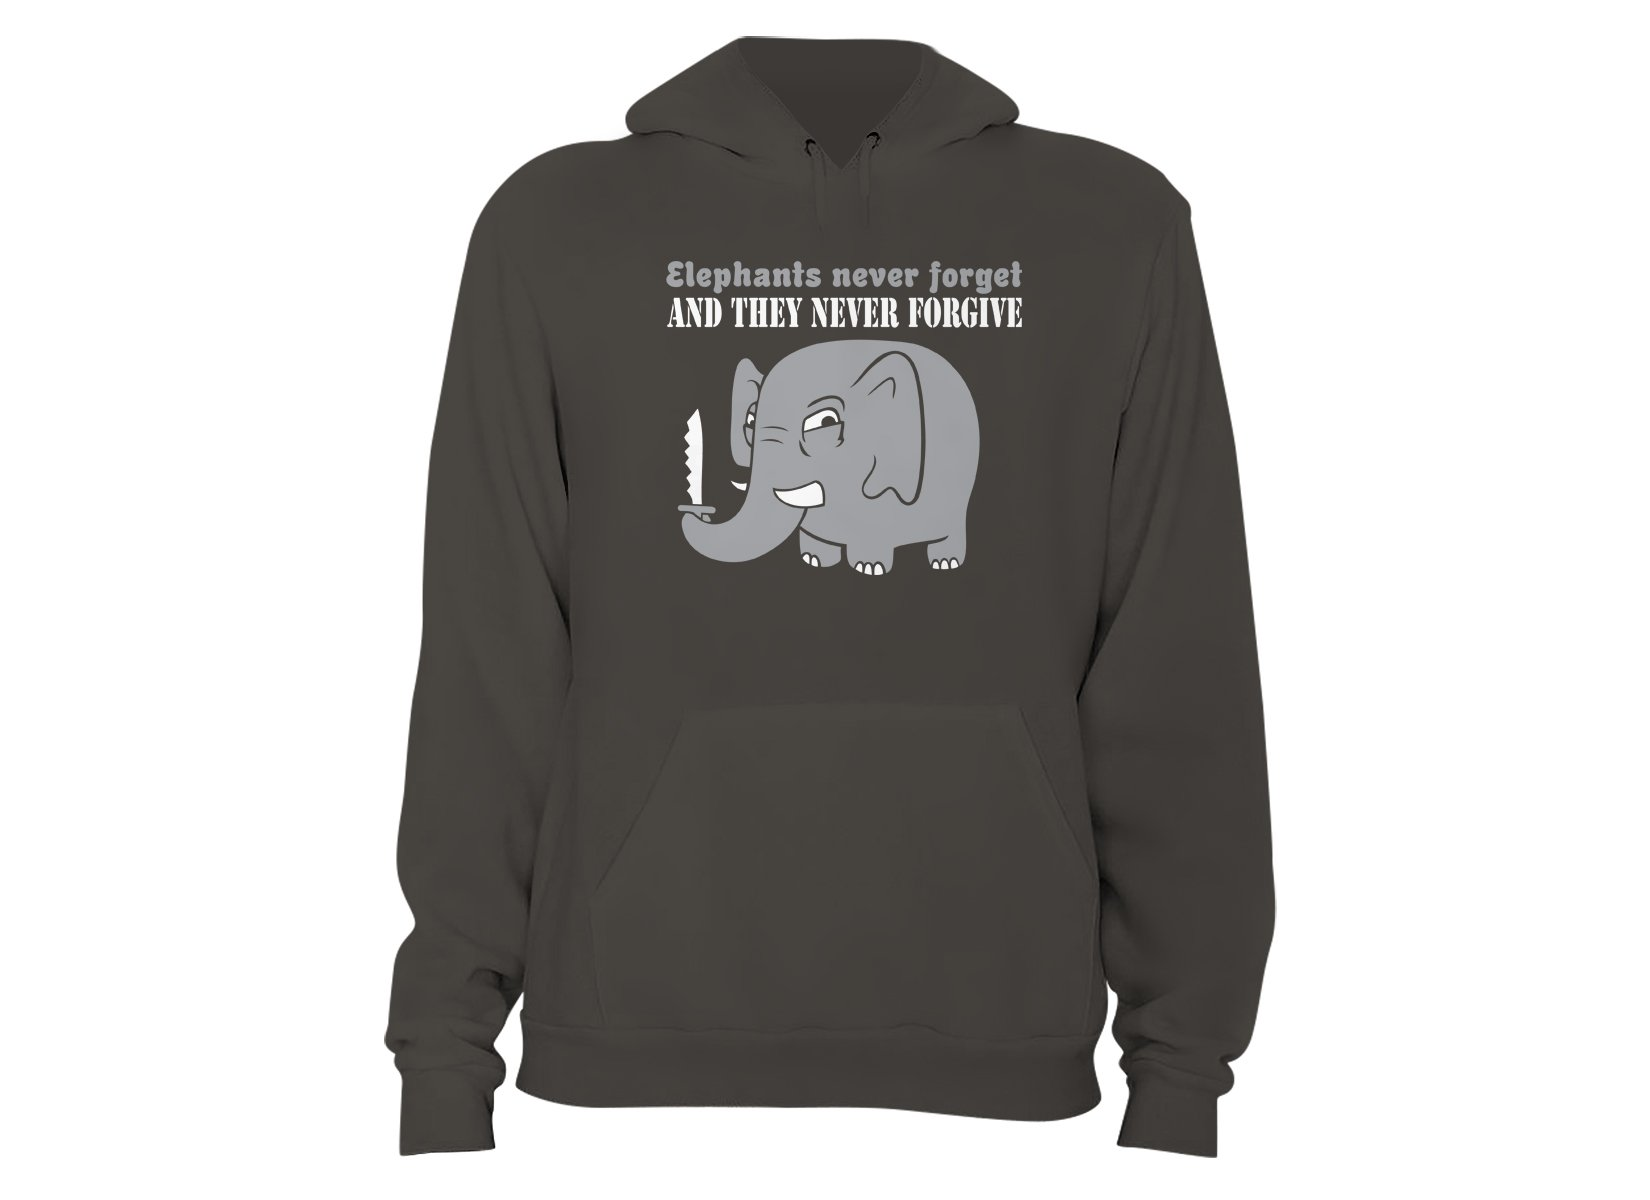 Elephants Never Forgive on Hoodie